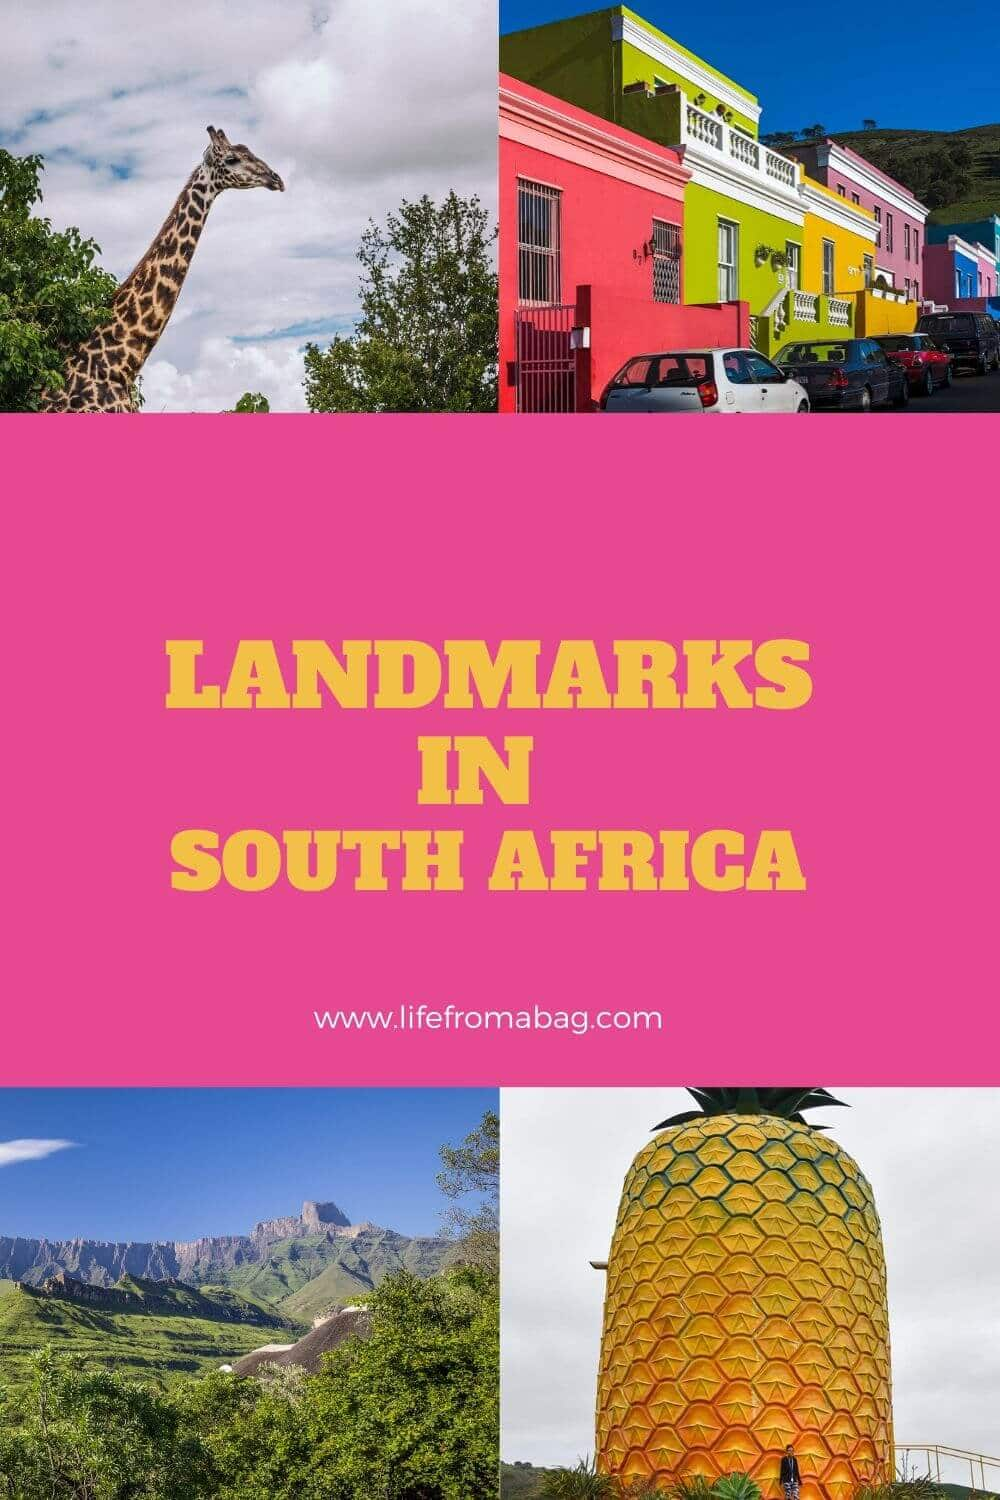 Landmarks in South Africa